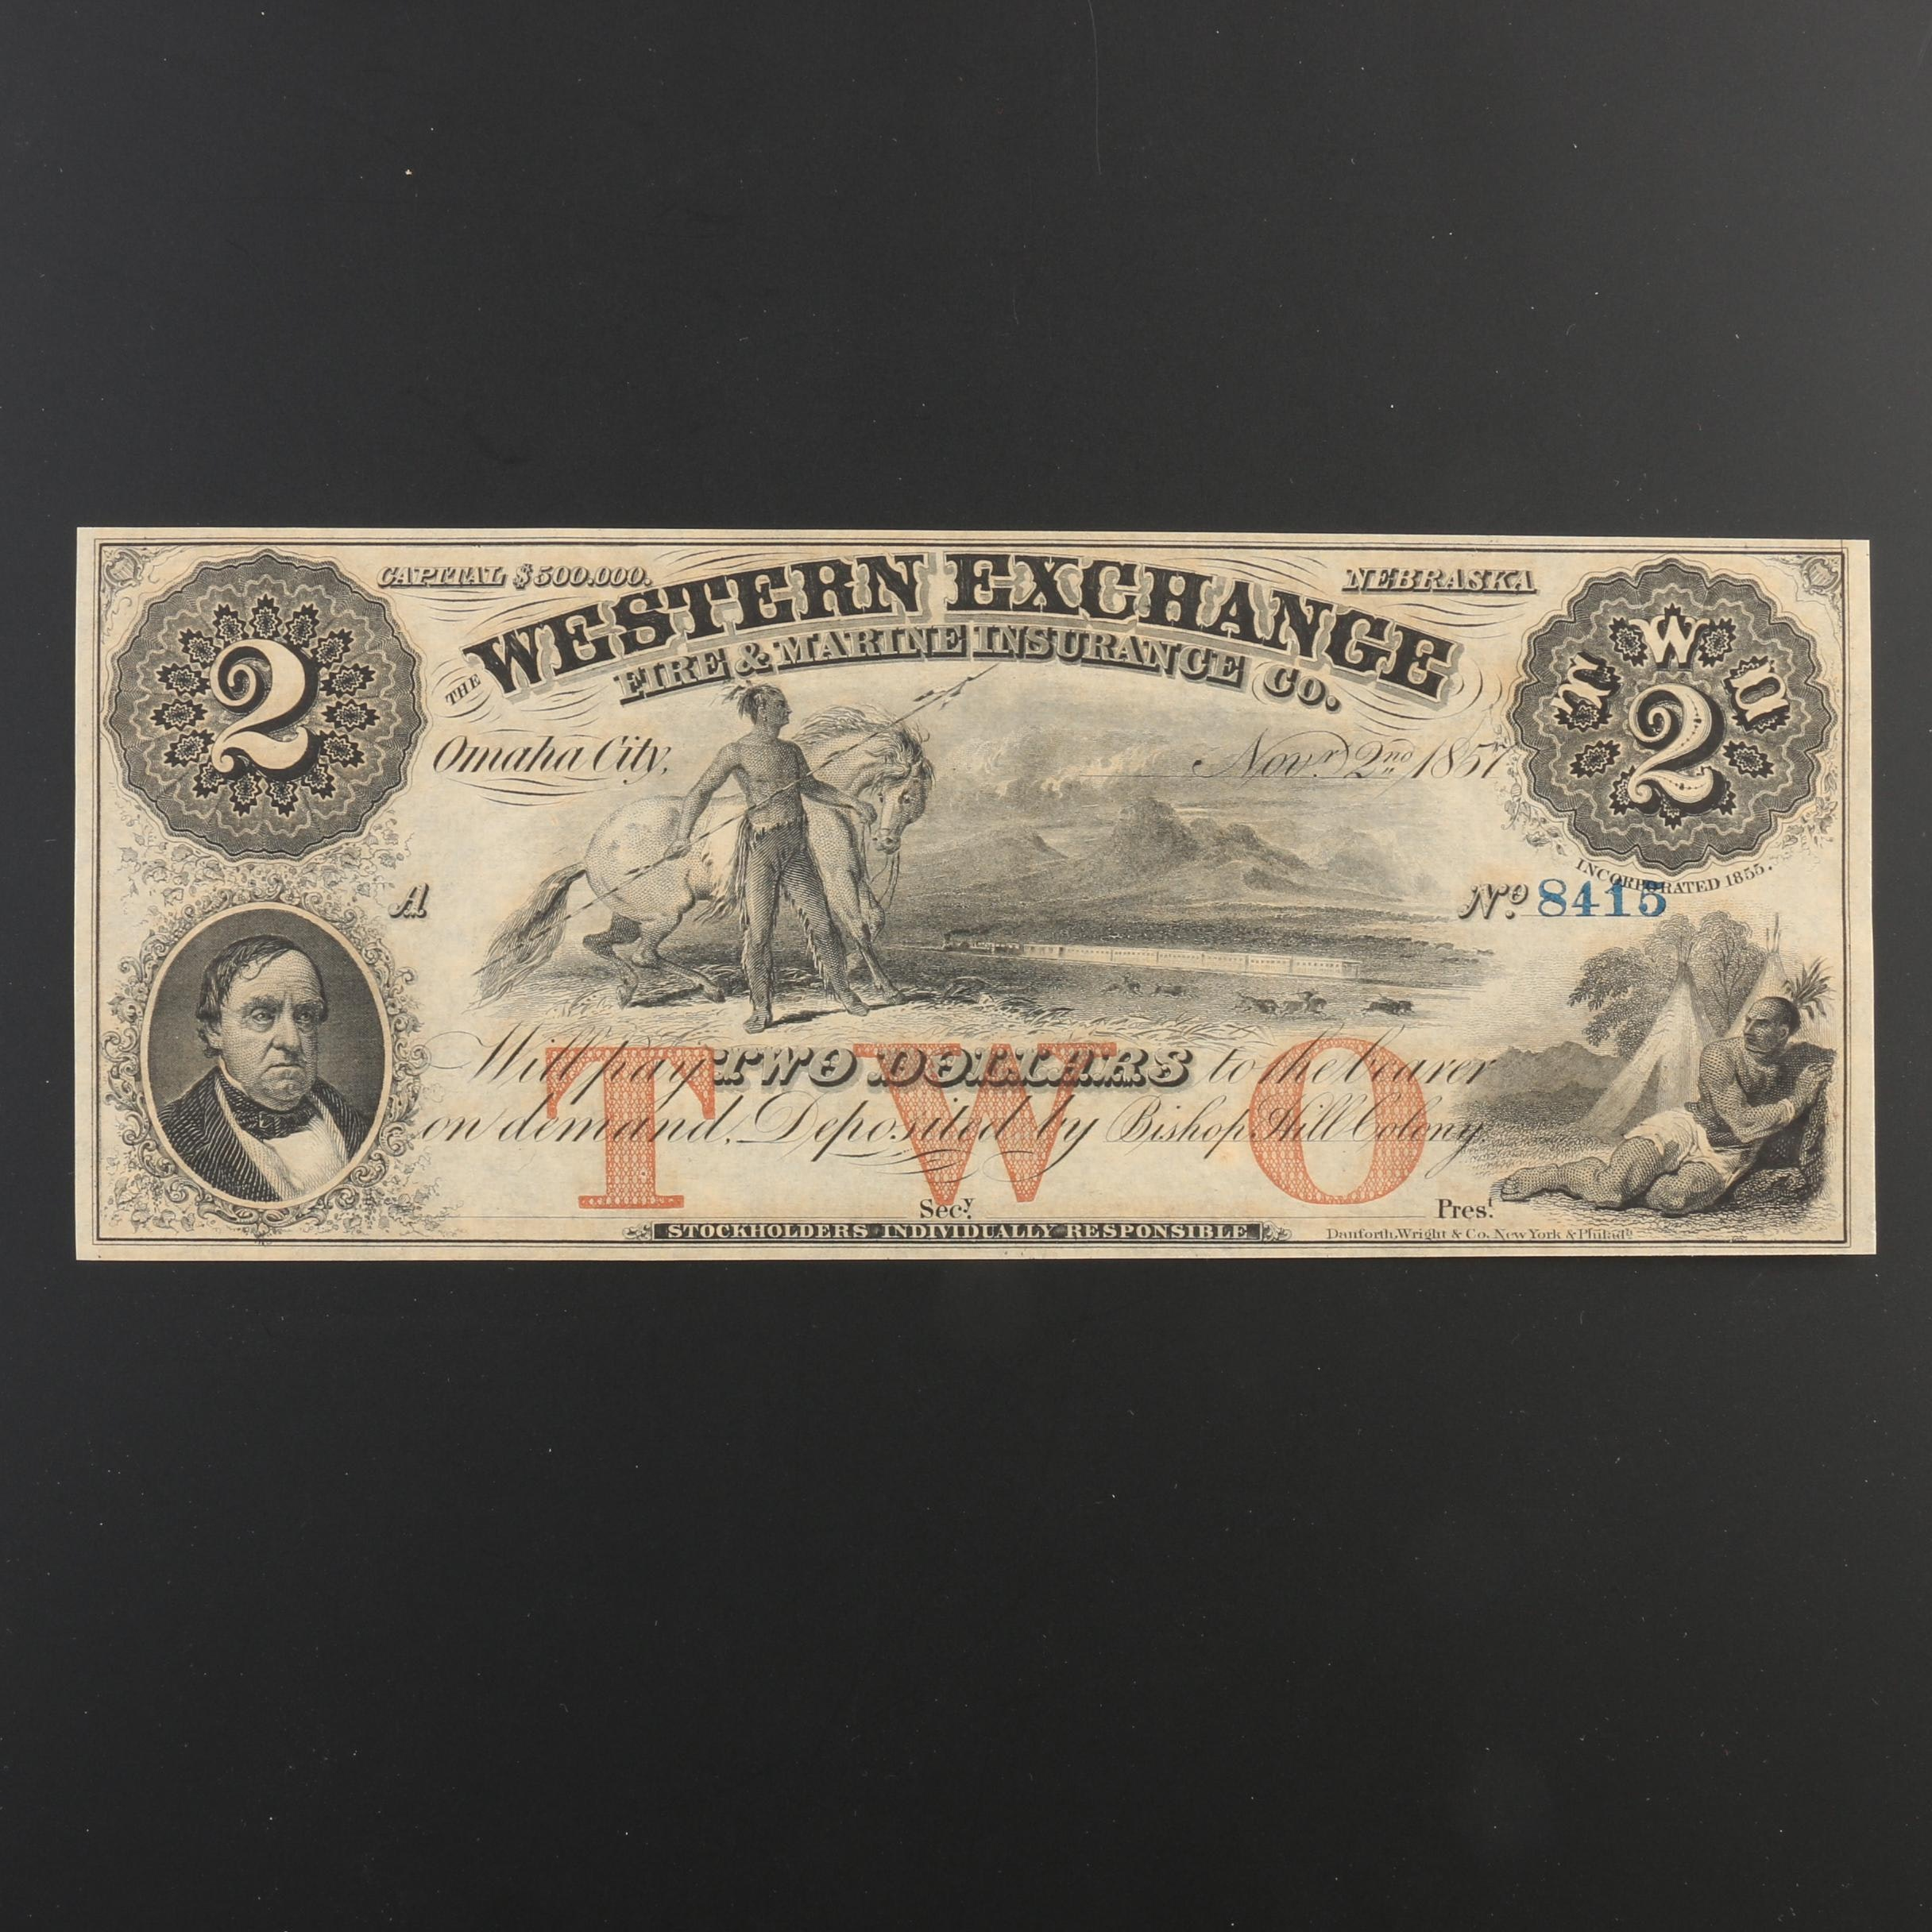 1857 $2 Currency Note from The Western Exchange Fire and Marine Insurance Co.